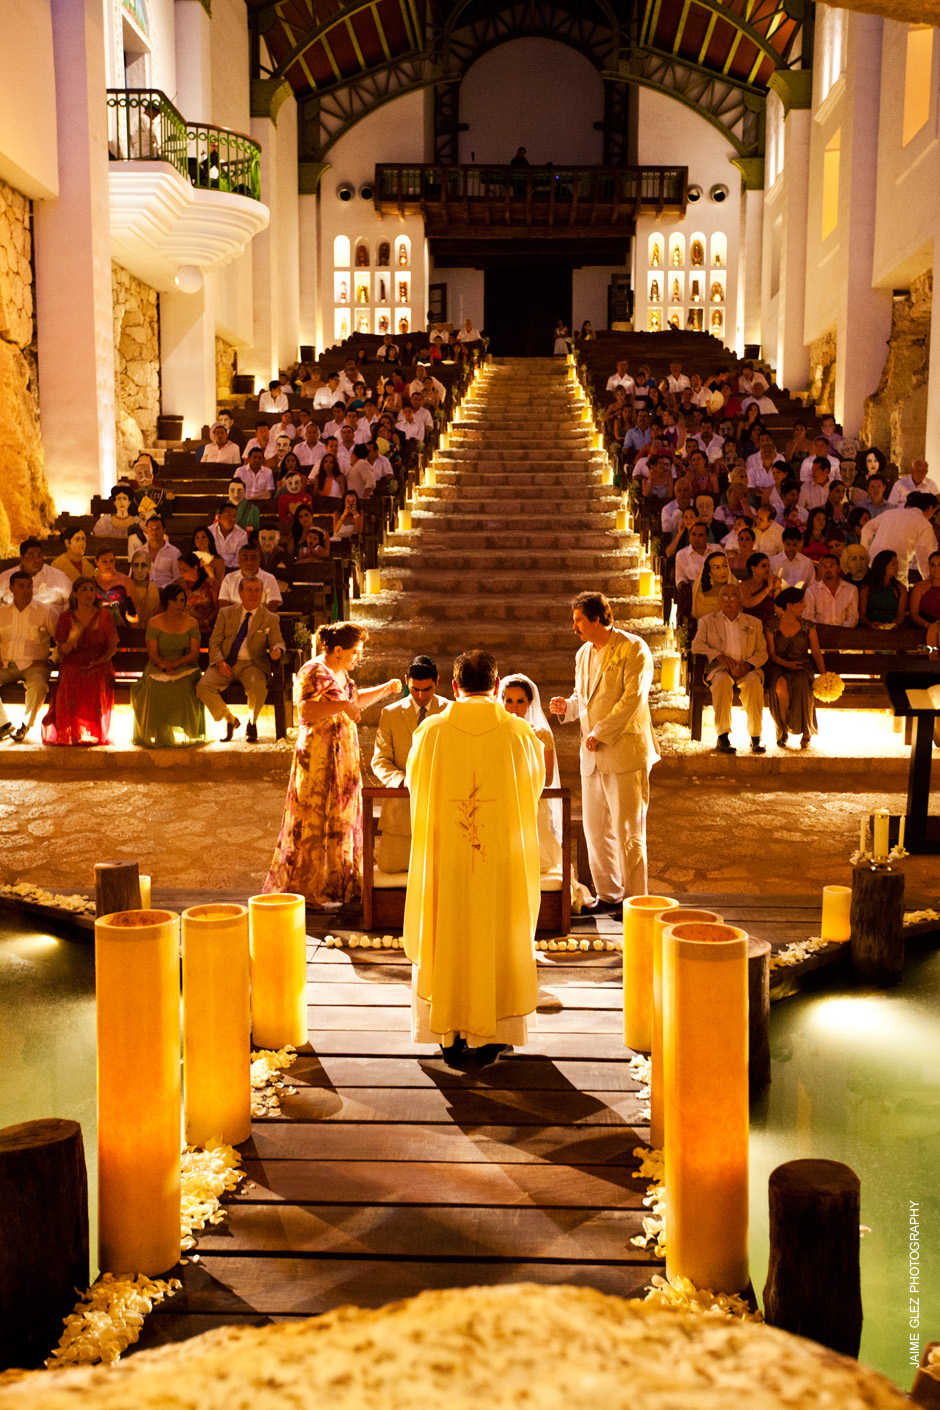 Back view of wedding ceremony in our Lady of Guadalupe Chapel in Xcaret Park, Mexico.